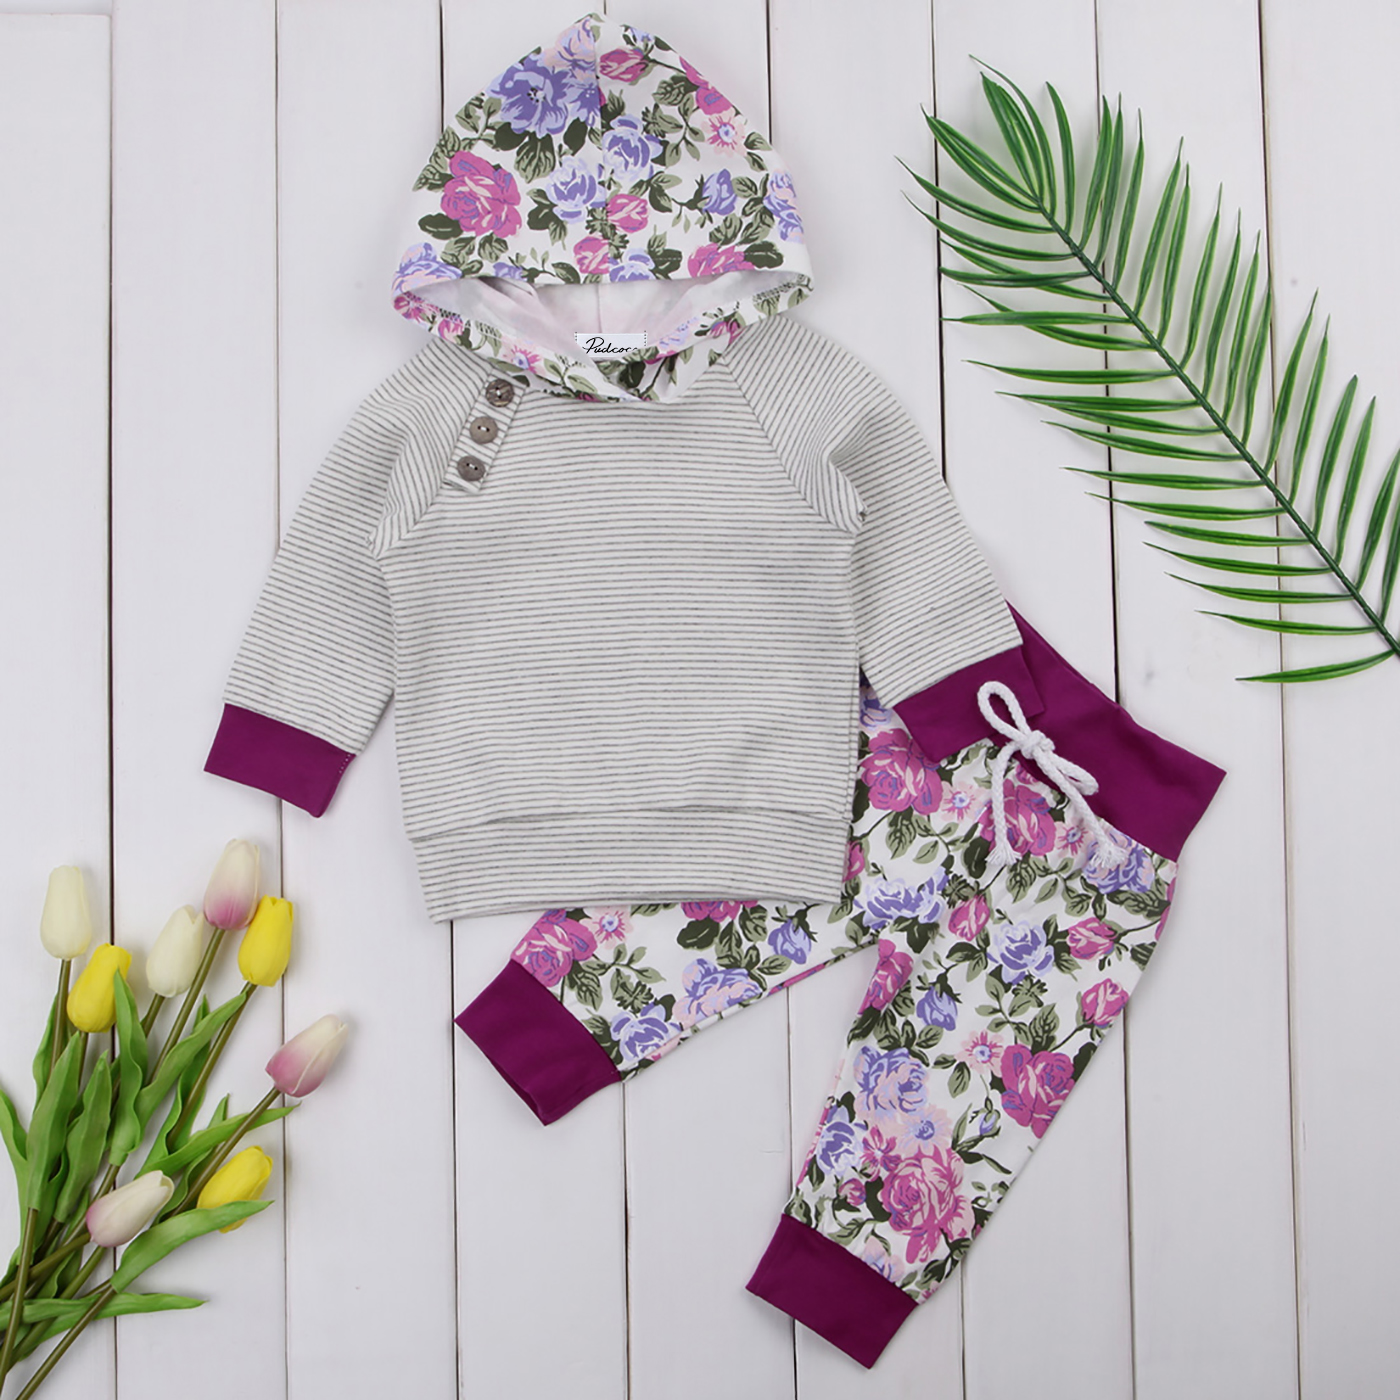 Winter Autumn Toddler Newborn Baby Girl Striped Long Sleeve T-shirt Top Hoodie Print Pants 2pcs Outfits Set